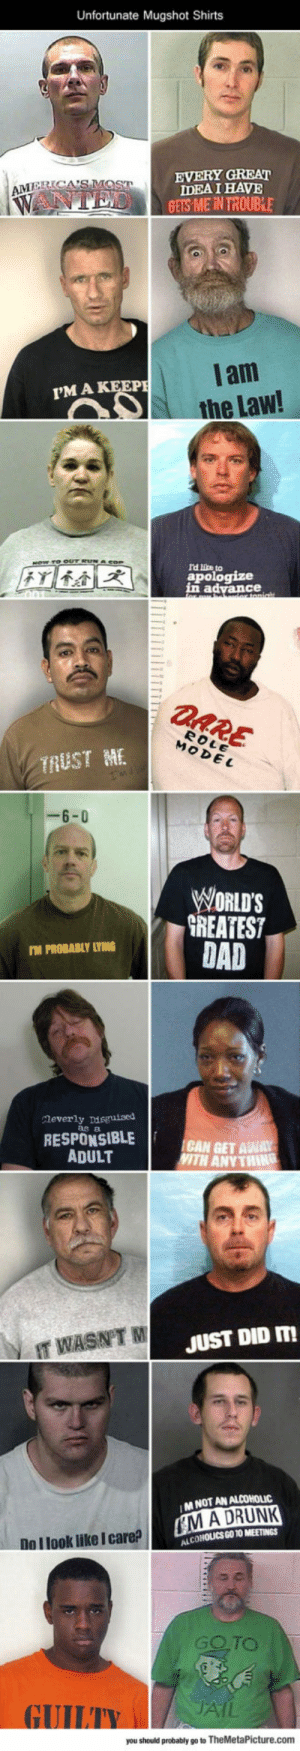 Drunk, Tumblr, and Blog: Unfortunate Mugshot Shirts  EVERY GREAT  IDEA I HAVE  GETS ME İN TROUBLE  lam  the Law!  I'MA  l'd lite to  apologize  n advance  TRUST ME  6-0  WORLDS  GREATEST  TM PROBABLY LYING  Meverl  y Disguised  as a  RESPONSIBLE  ADULT  CAN GET AWAY  'ITH ANY THINǐ  IT WASNT  JUST DID m  MNOT AN ALCOHOLIC  M A DRUNK  LCOHOUCSGO TO MEETINGS  Do l look like I care?  GOTO  AIL  you should probably go to TheMetaPicture.com srsfunny:Bat Timing For That Shirt